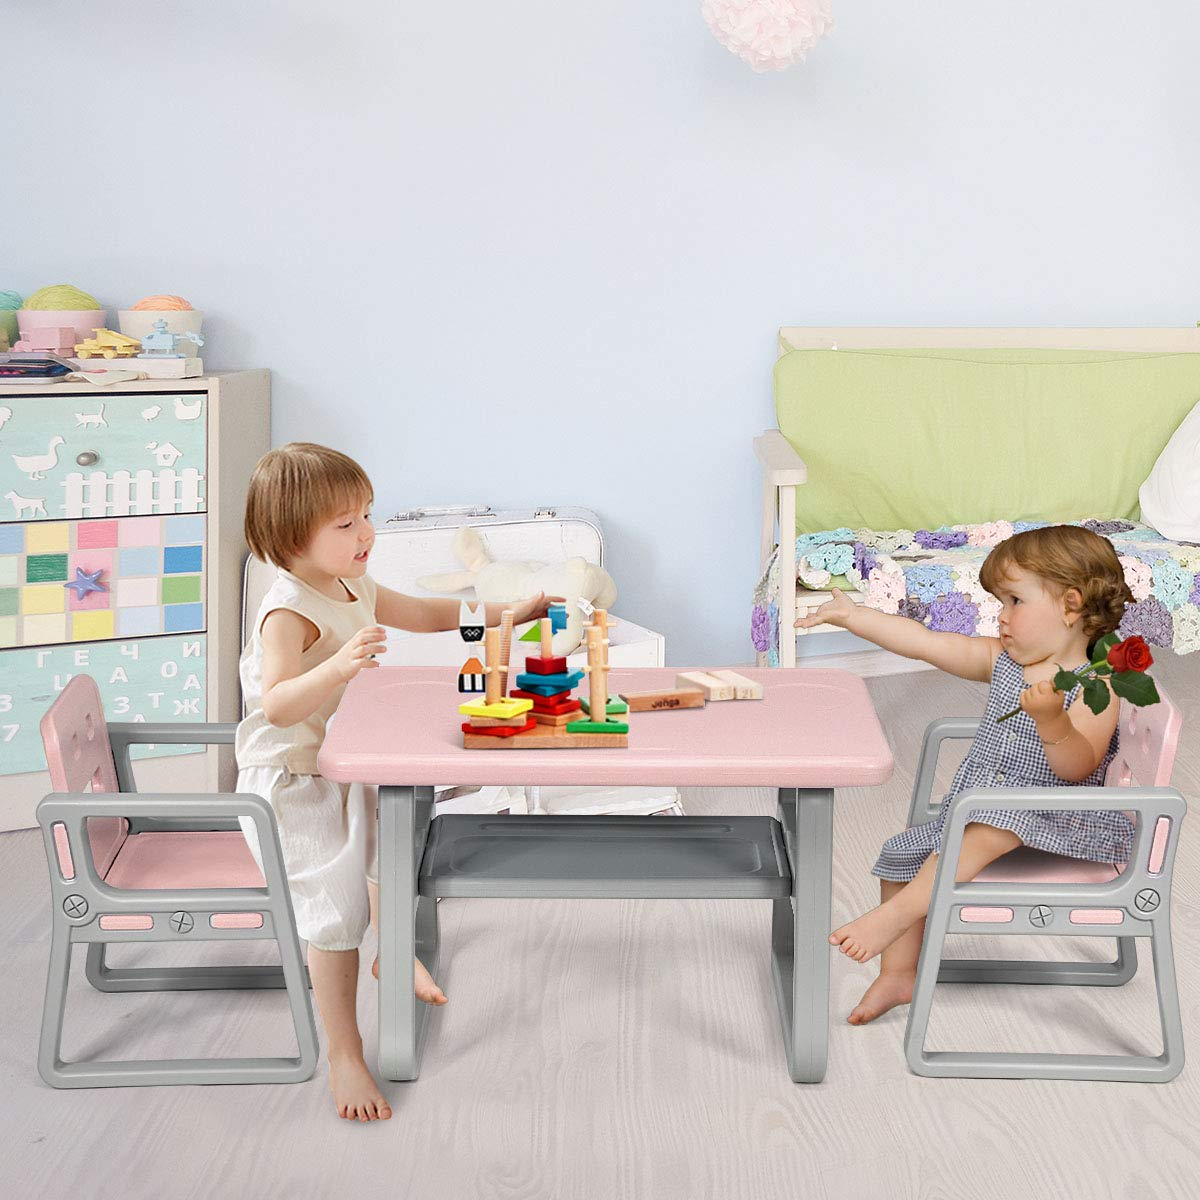 Costzon 3 Piece Kids Table and 2 Chairs Set, Learning Activity Play Table, Baby Dining Table, Children Desk Chair for 1-3 Years, Kids Furniture Set (Pink) by Costzon (Image #1)